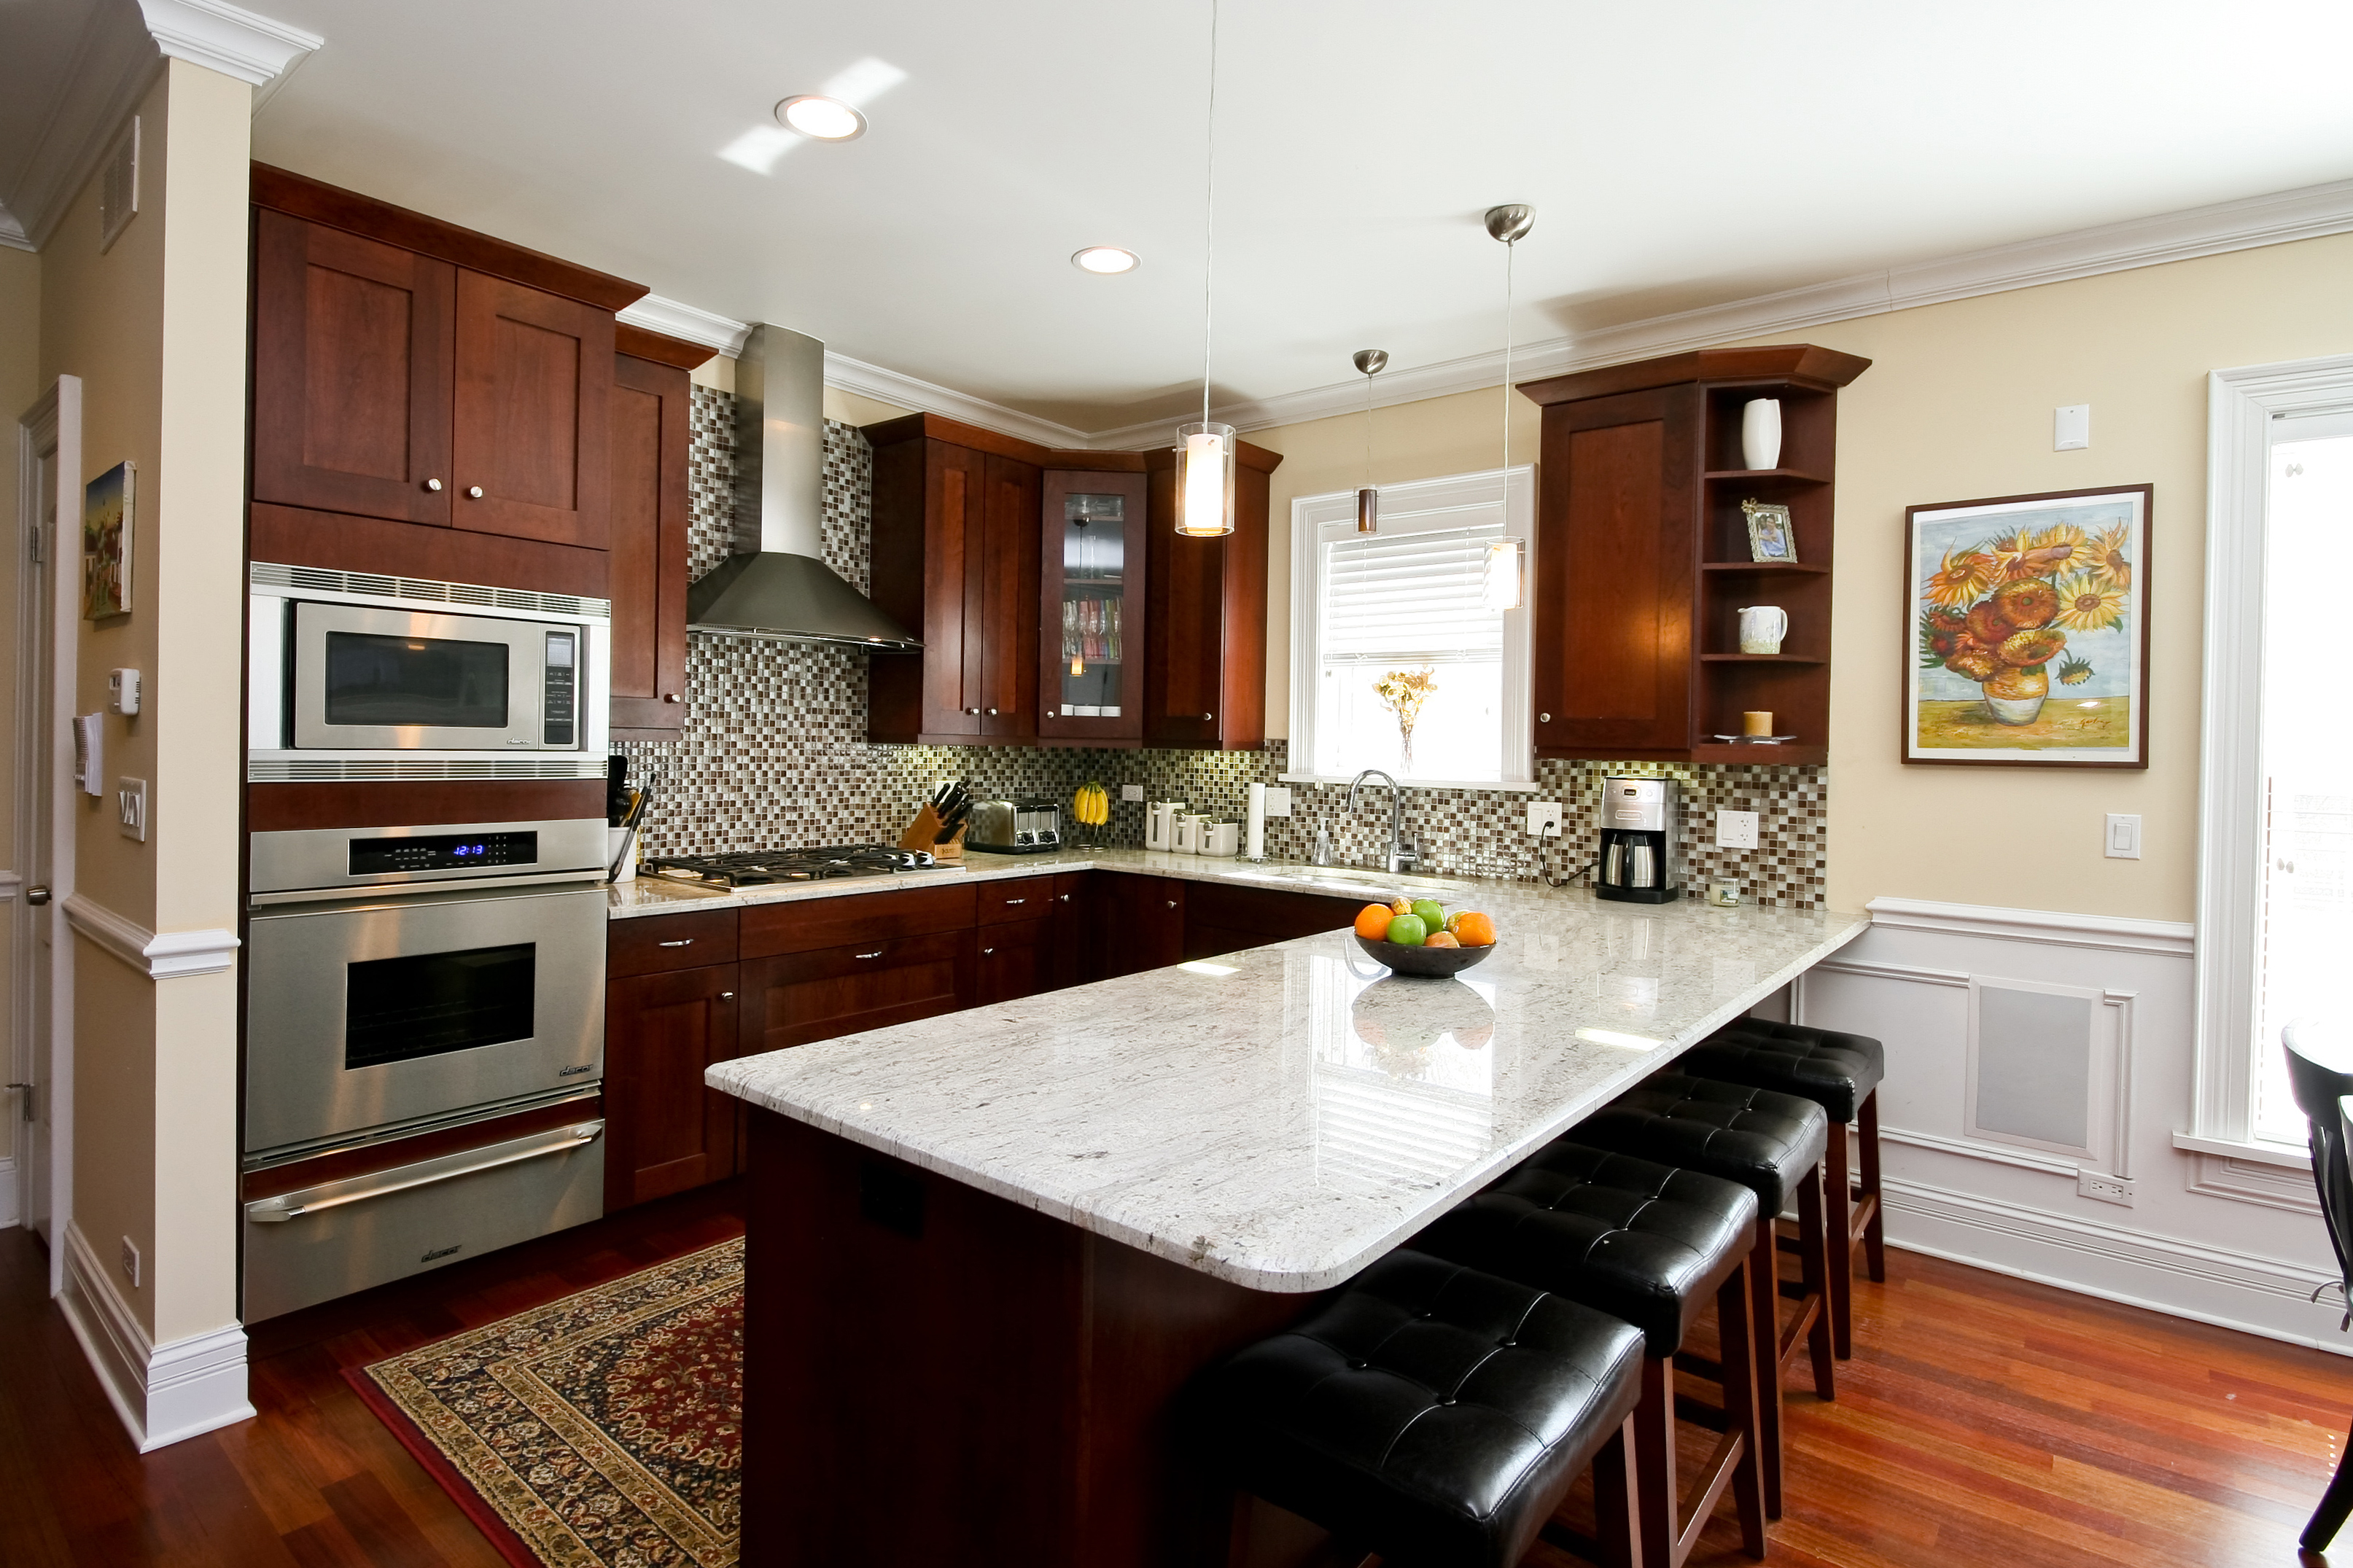 Kitchen Staging Staging Your Home For A Quicker Sale And Higher Sales Price Anne